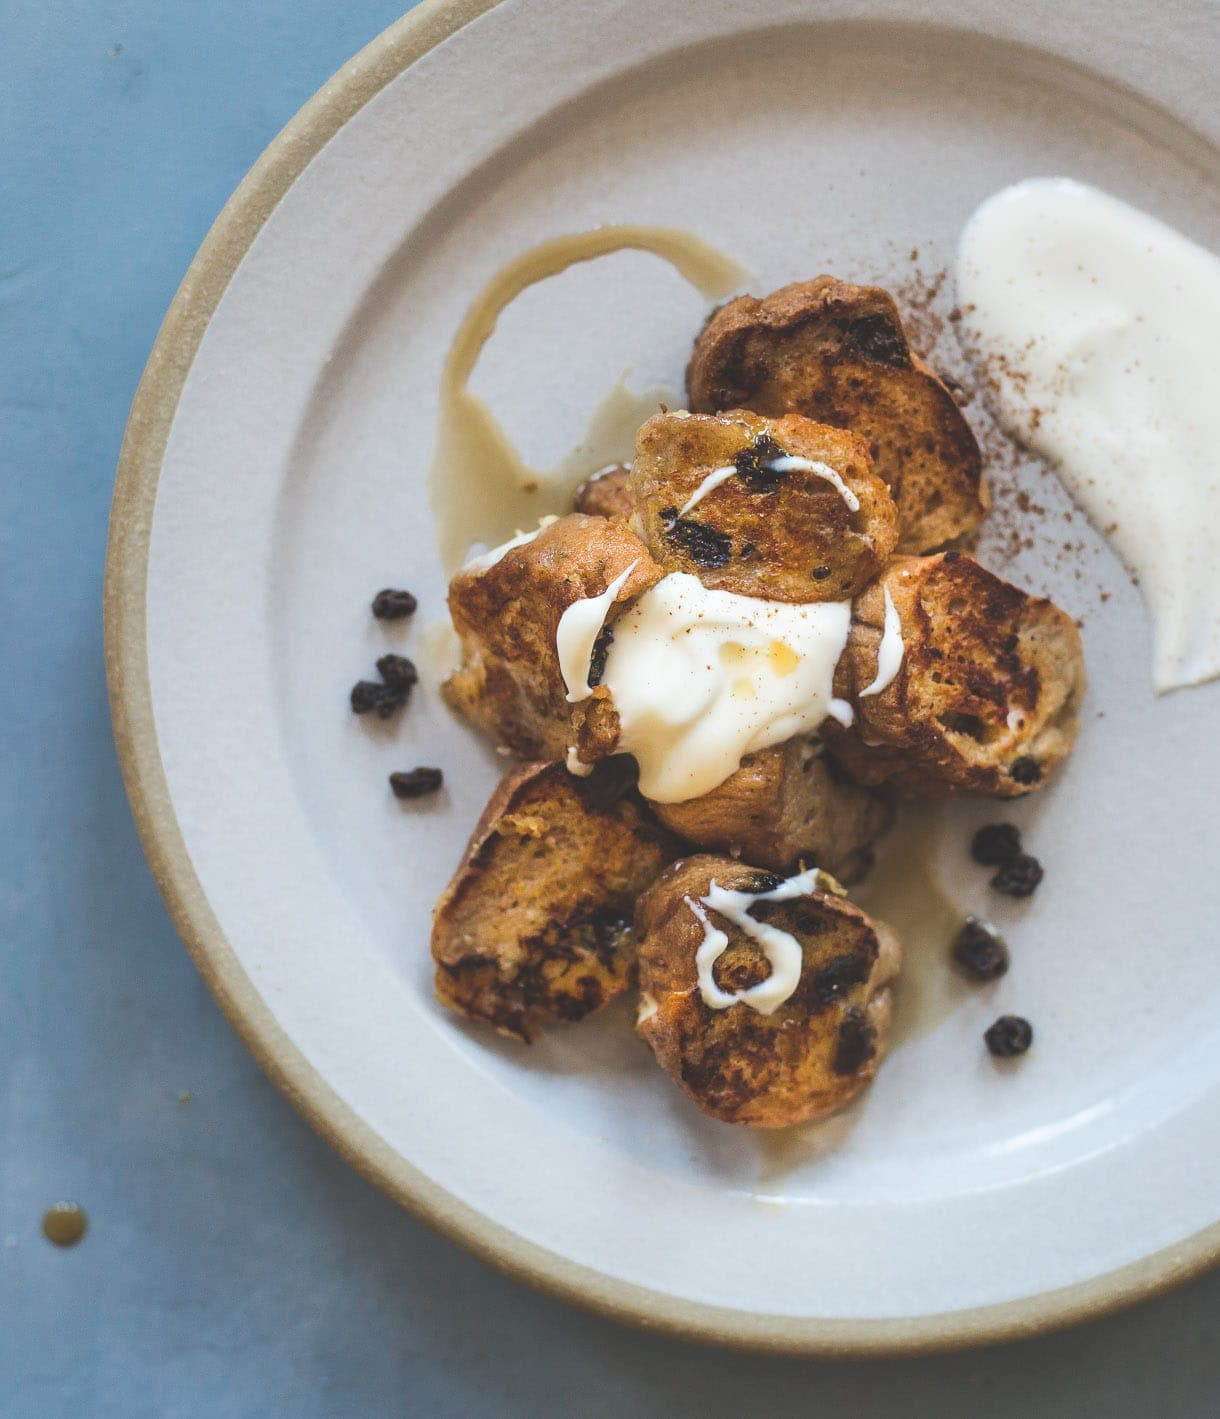 Cinnamon Raisin Bagel French Toast with Creme Fraiche - tastes like a cinnamon roll